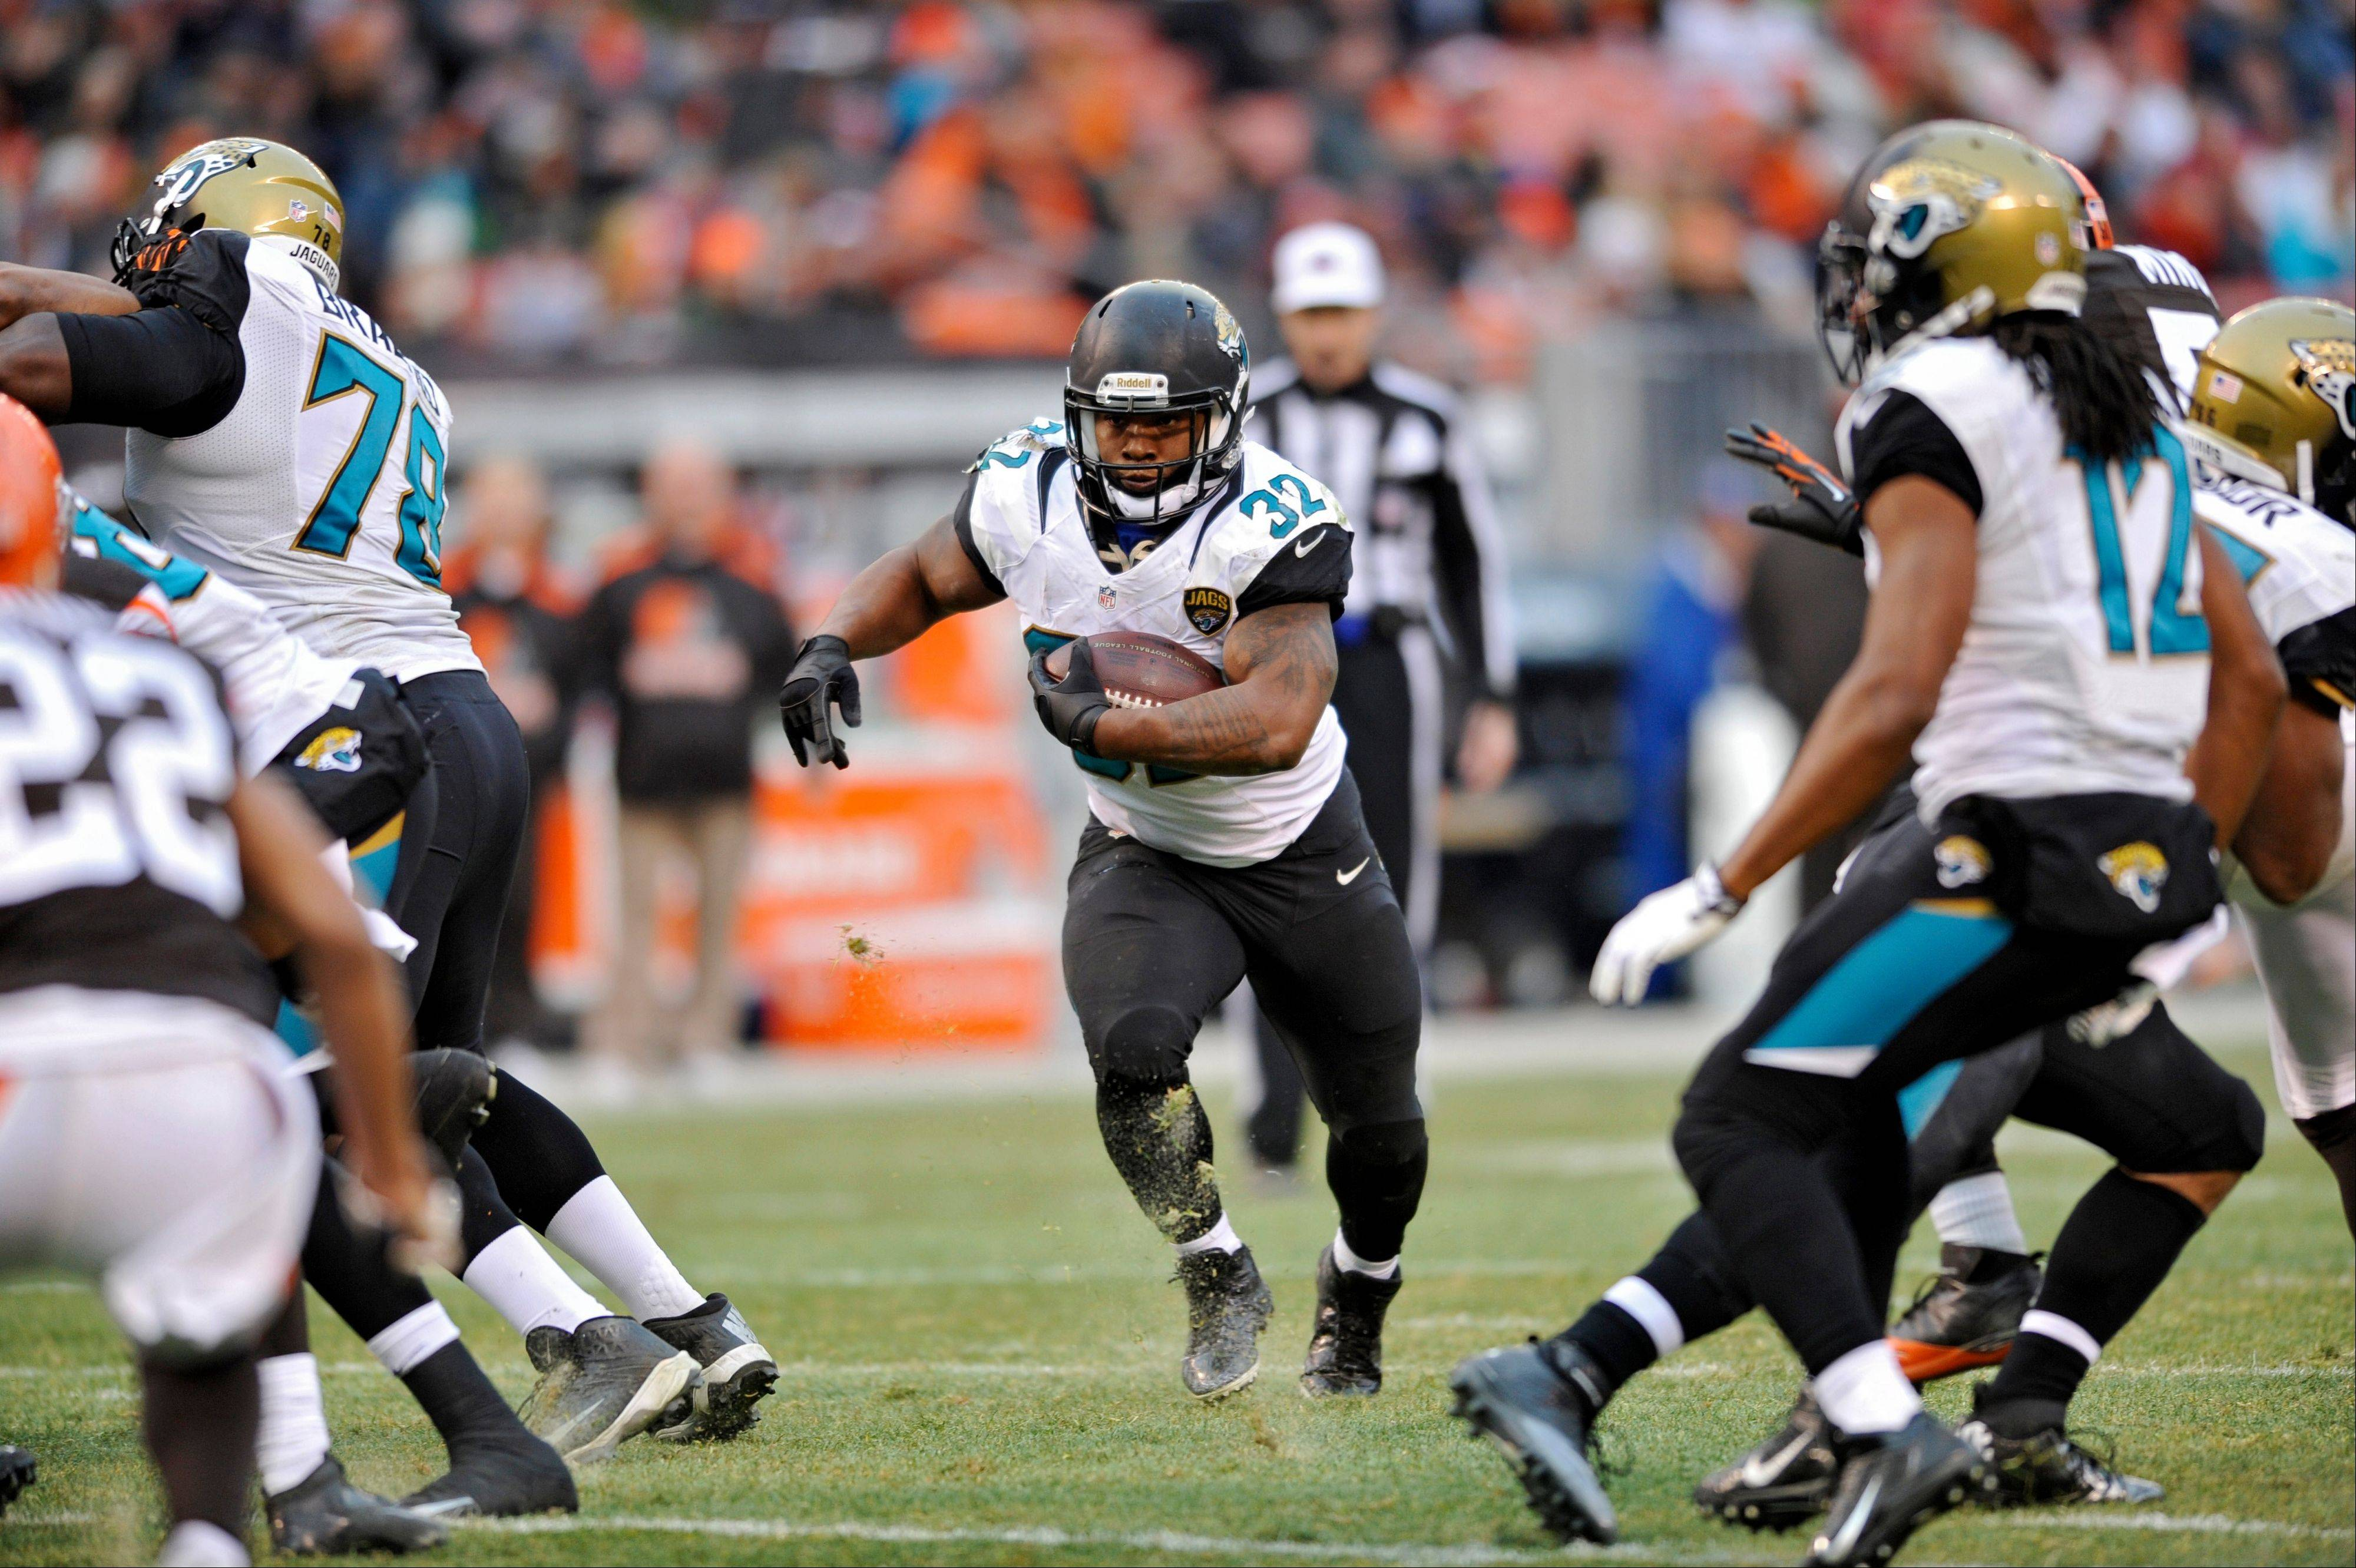 Jacksonville Jaguars running back Maurice Jones-Drew runs against the Cleveland Browns in the fourth quarter in Cleveland.